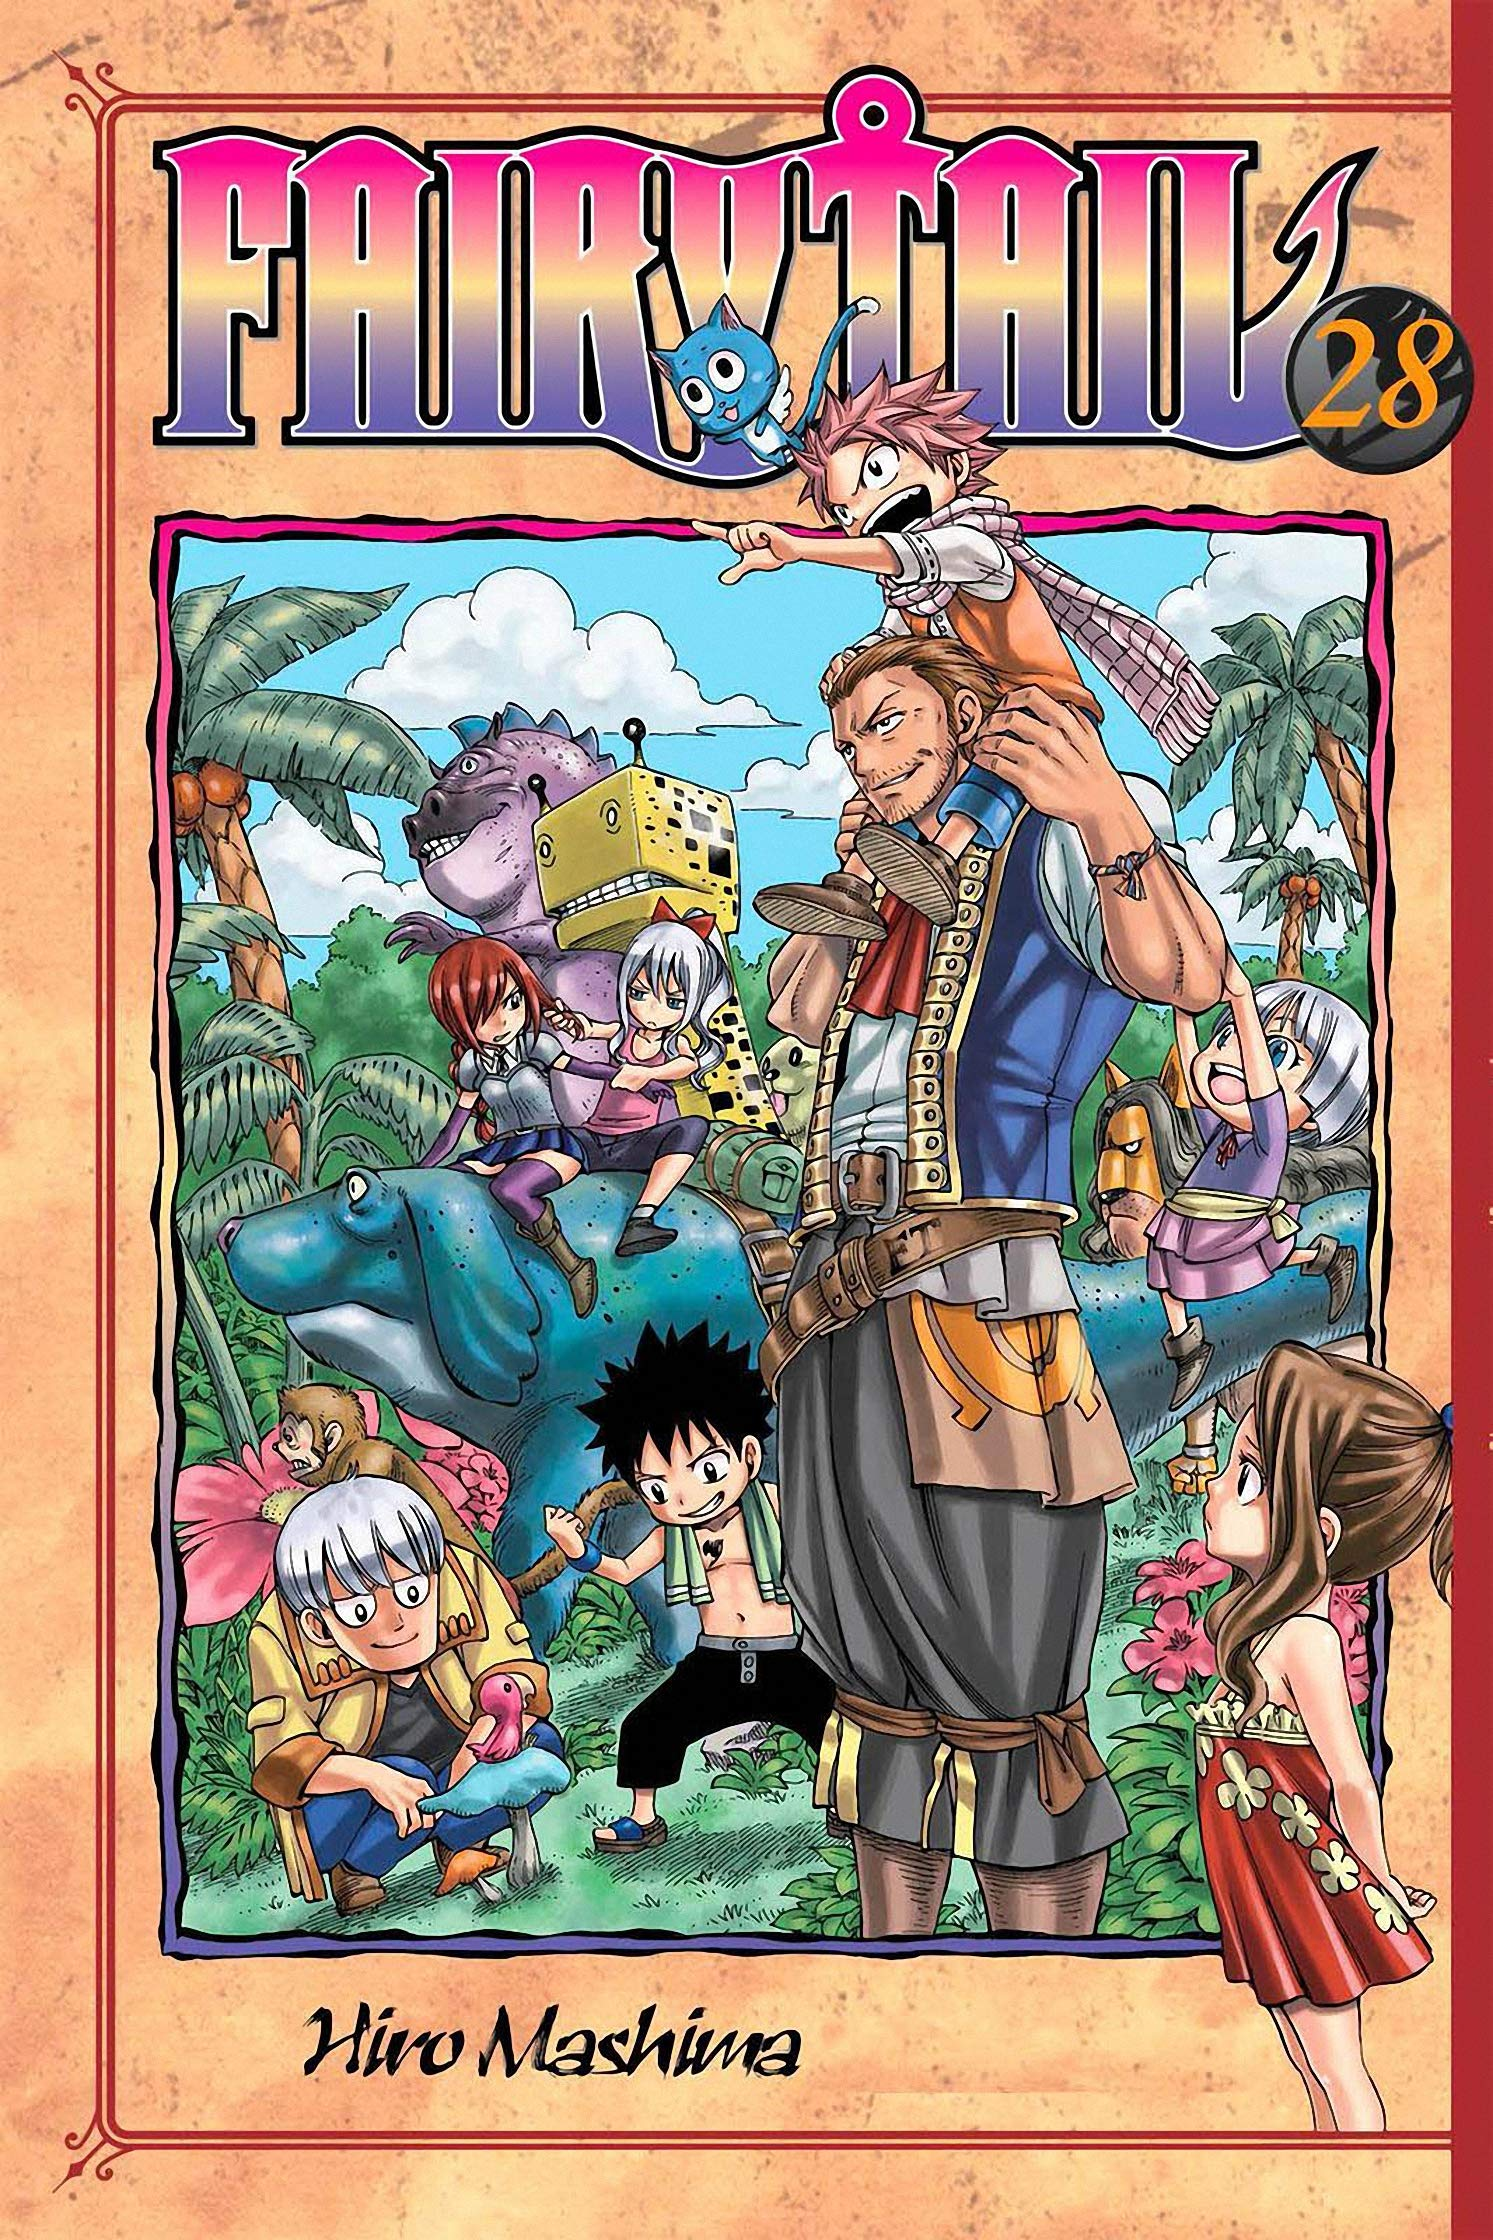 Fair: Tail - Book 28 Includes Vol 55 - 56 - Great Fairy Fantasy Action Graphic Novel Manga For Adults, Teenagers, Kids, Manga Lover